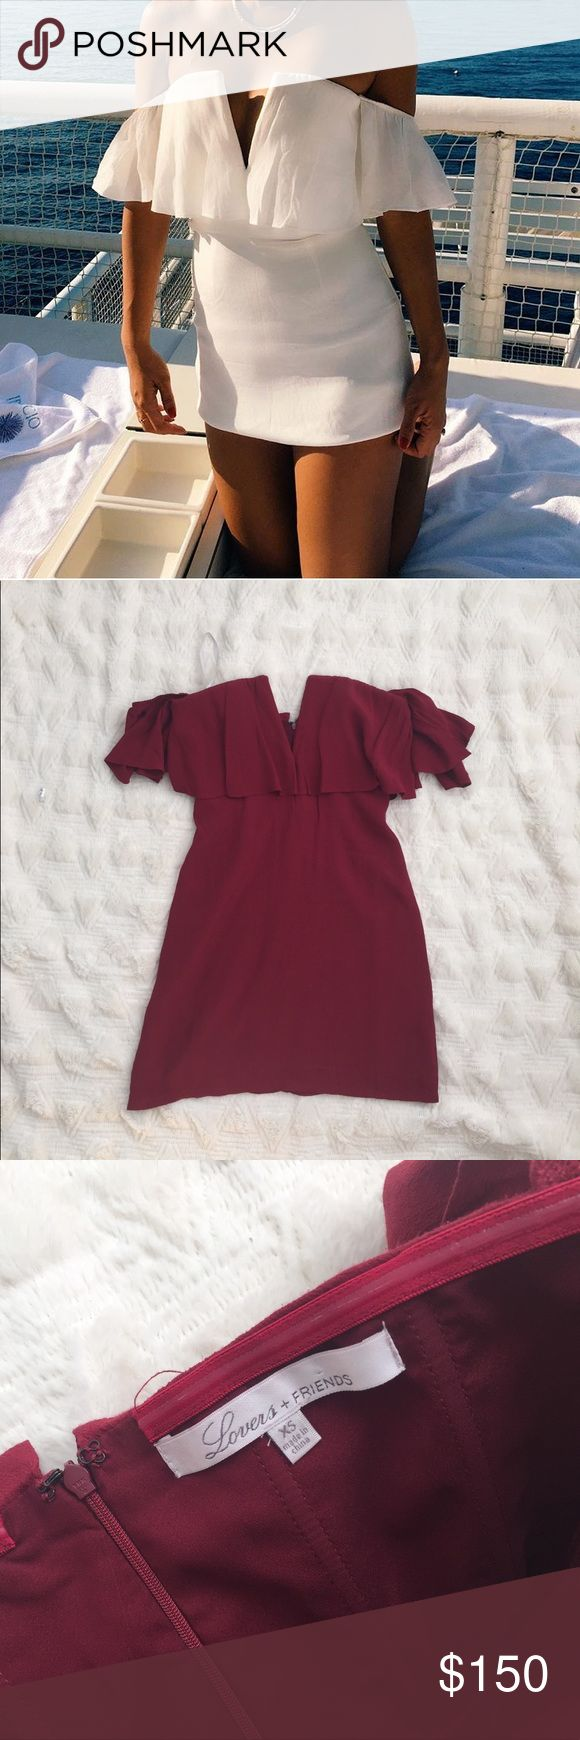 Bnwot lovers and friends red dress Brand new without tag Lovers + Friends Dresses